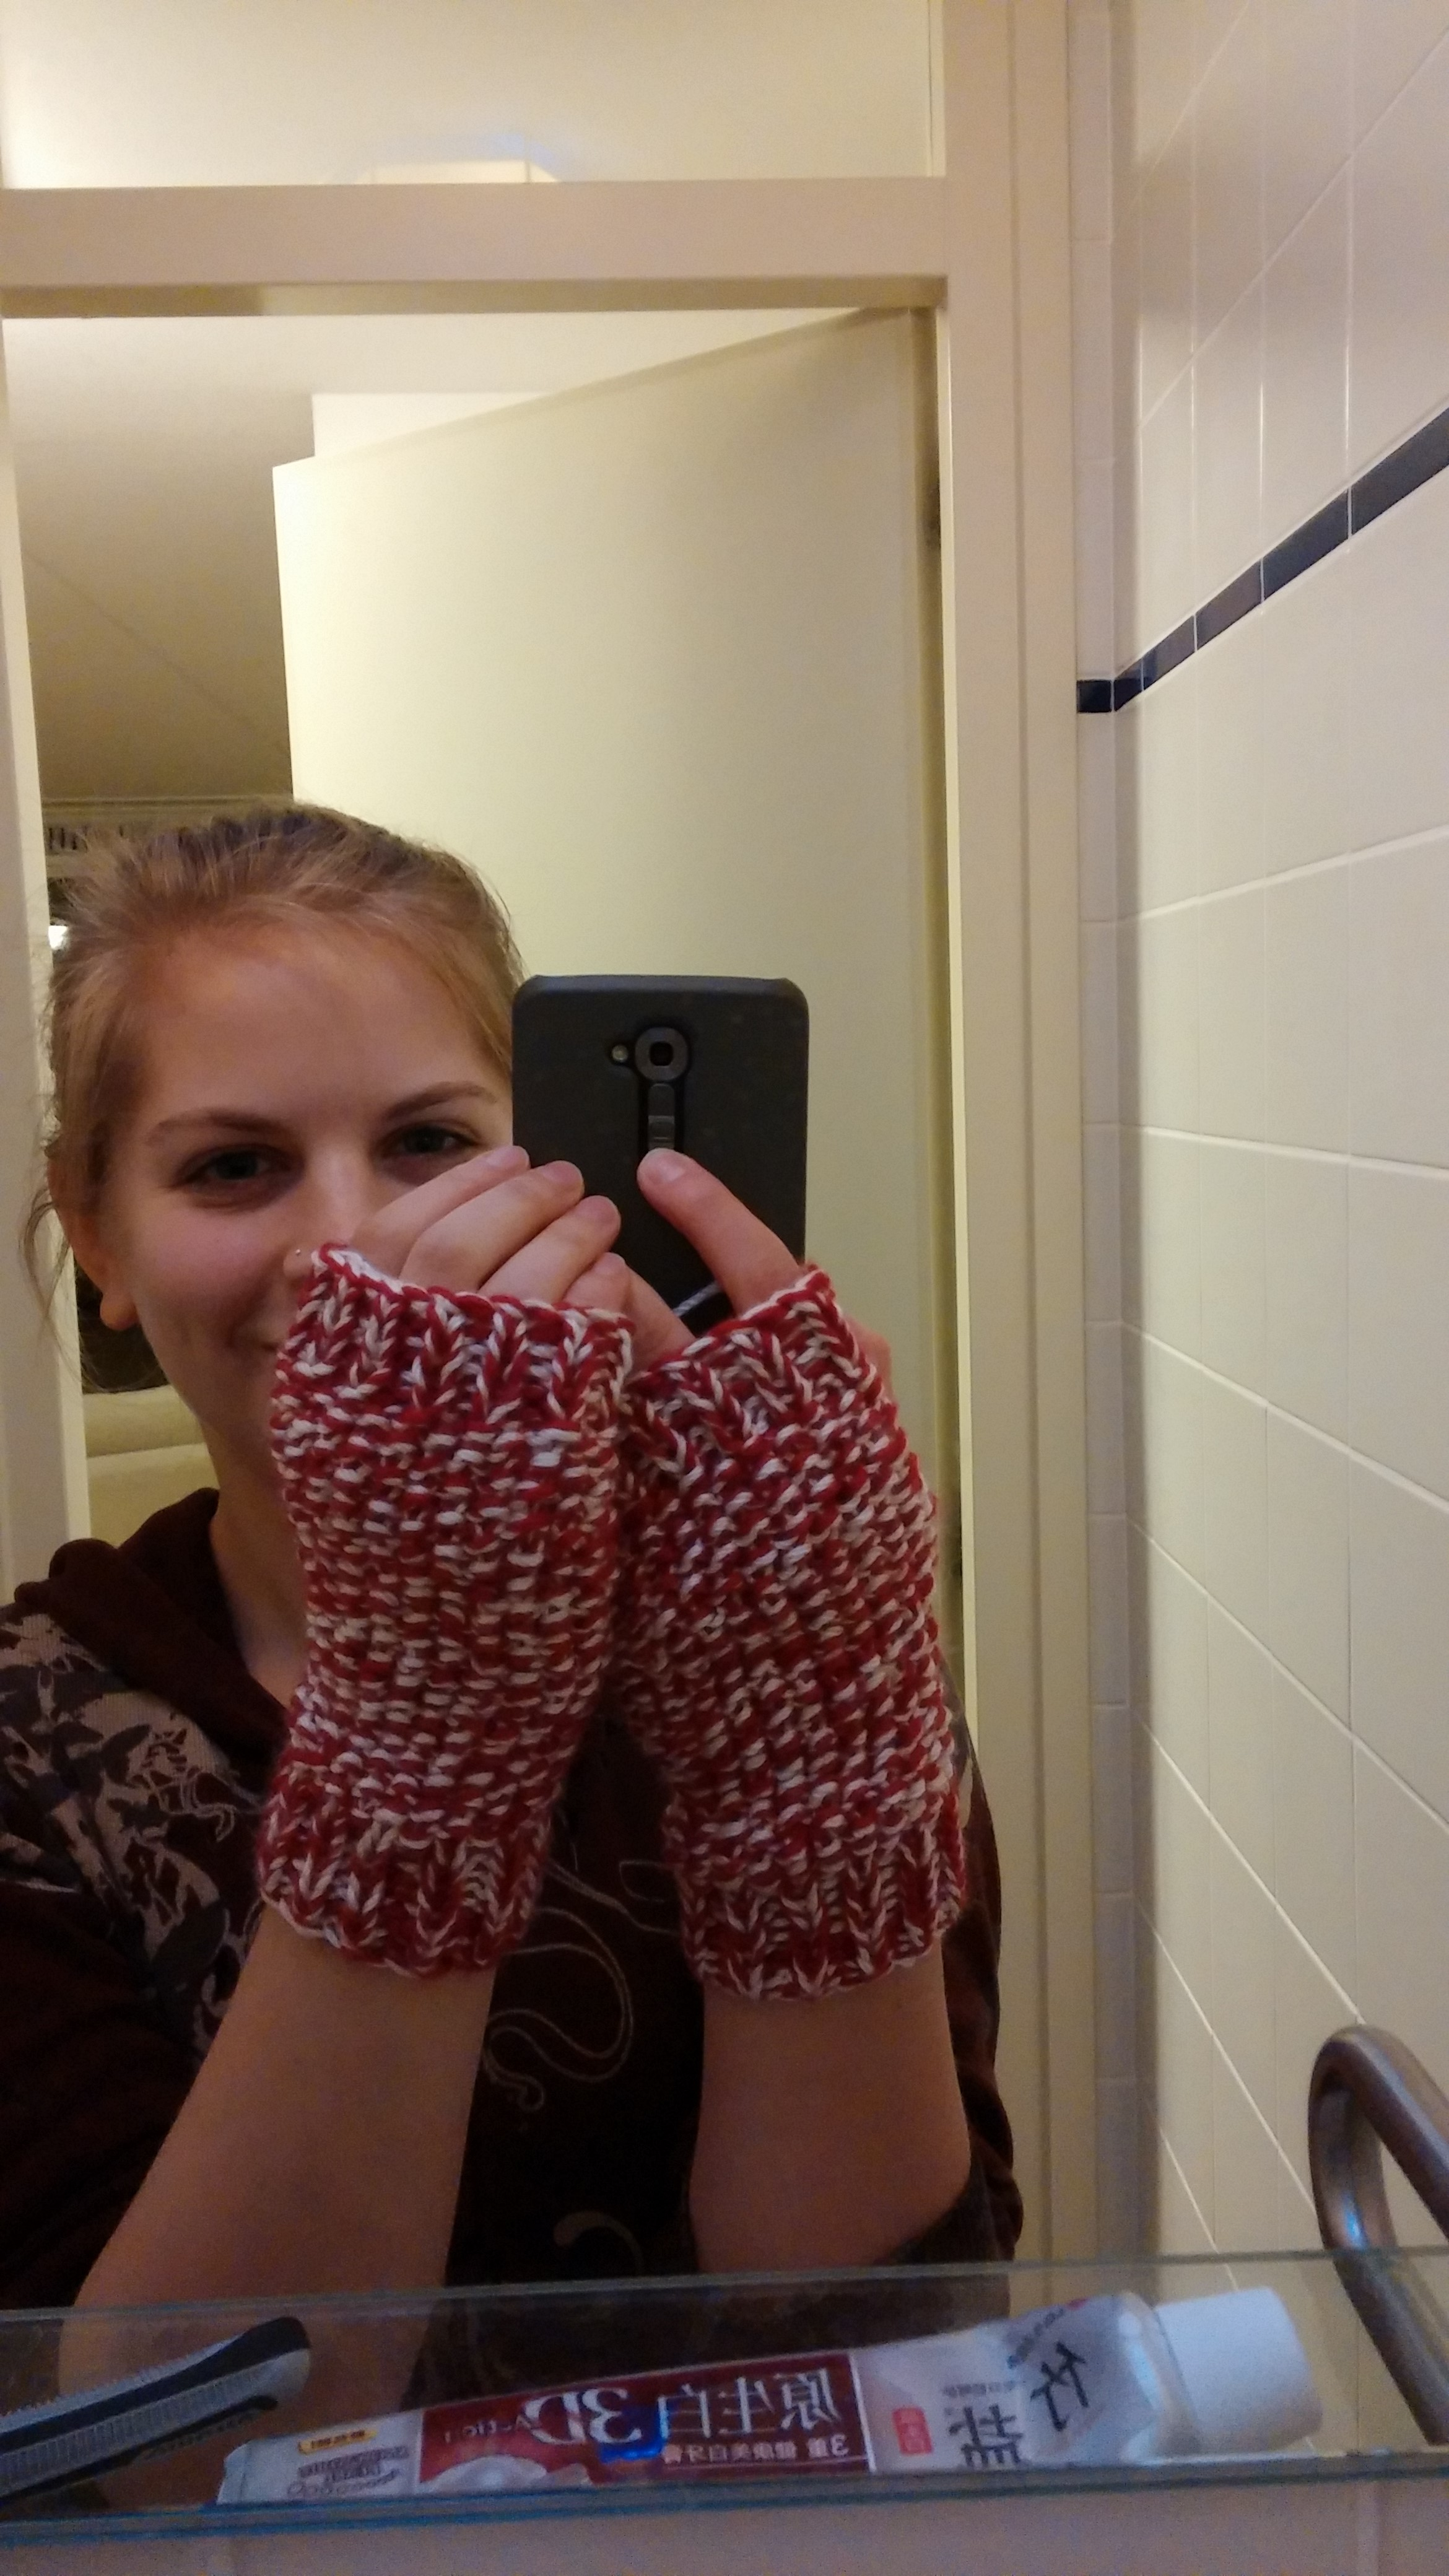 I finished knitting some hand warmers!